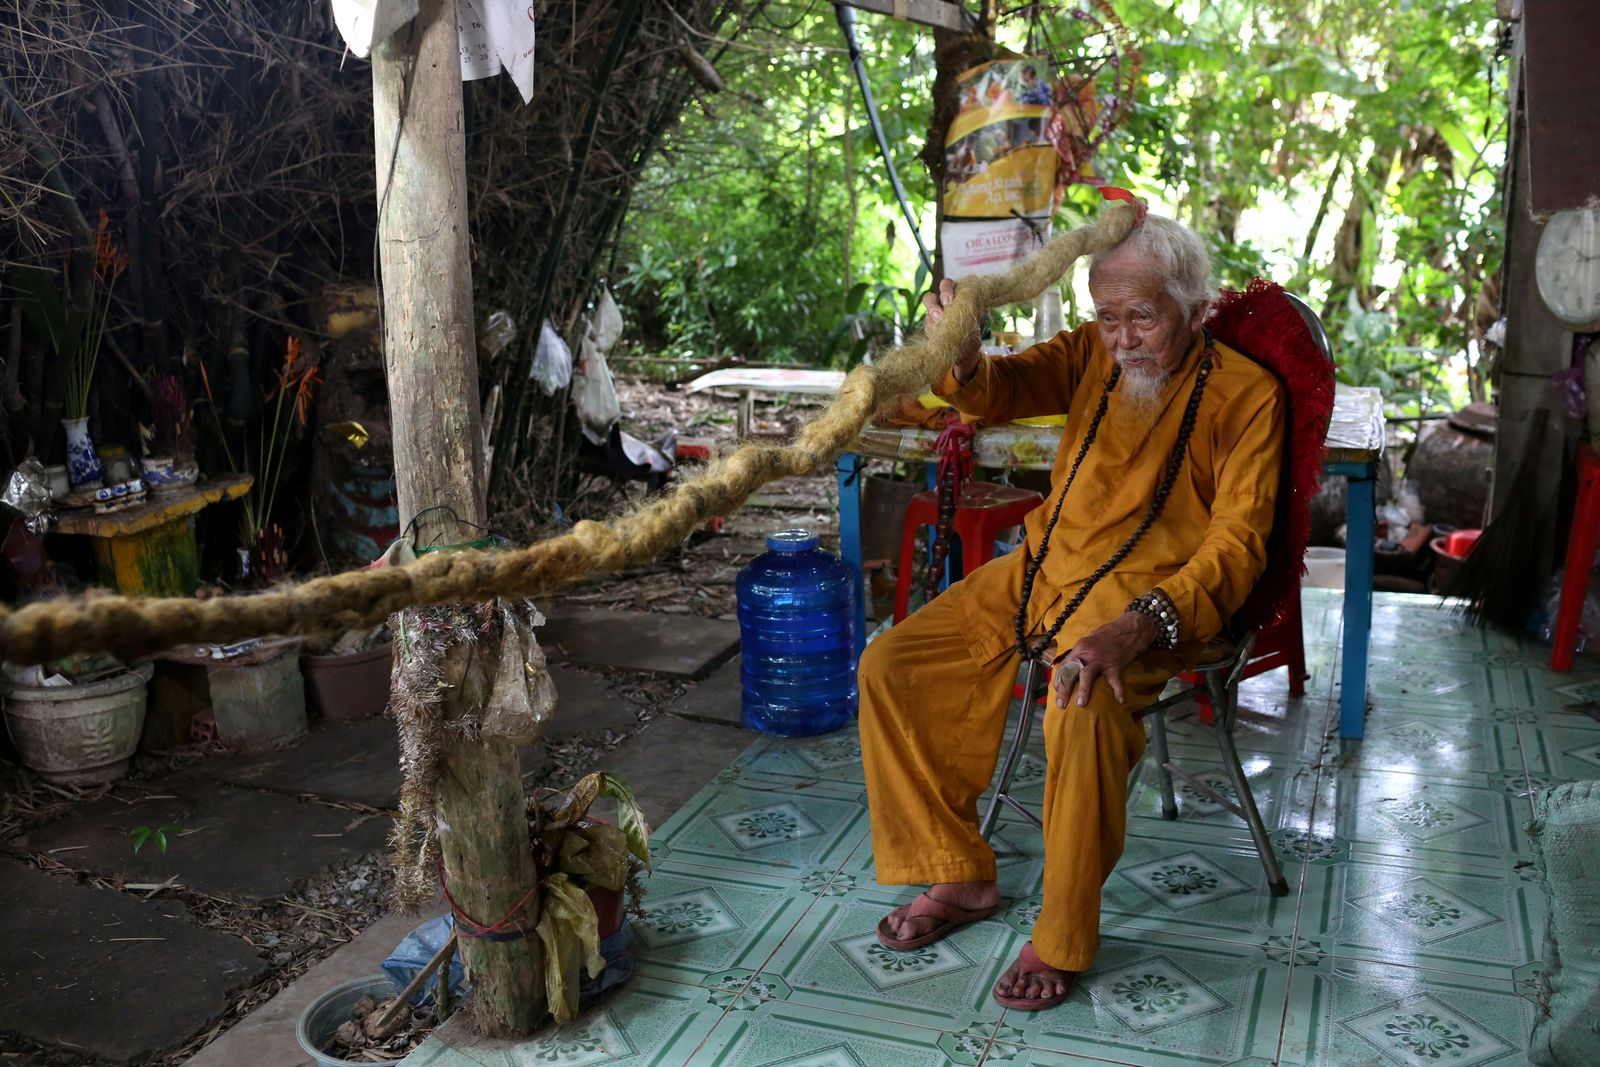 A 92-year-old man poses with his five-meter long hair in Vietnam